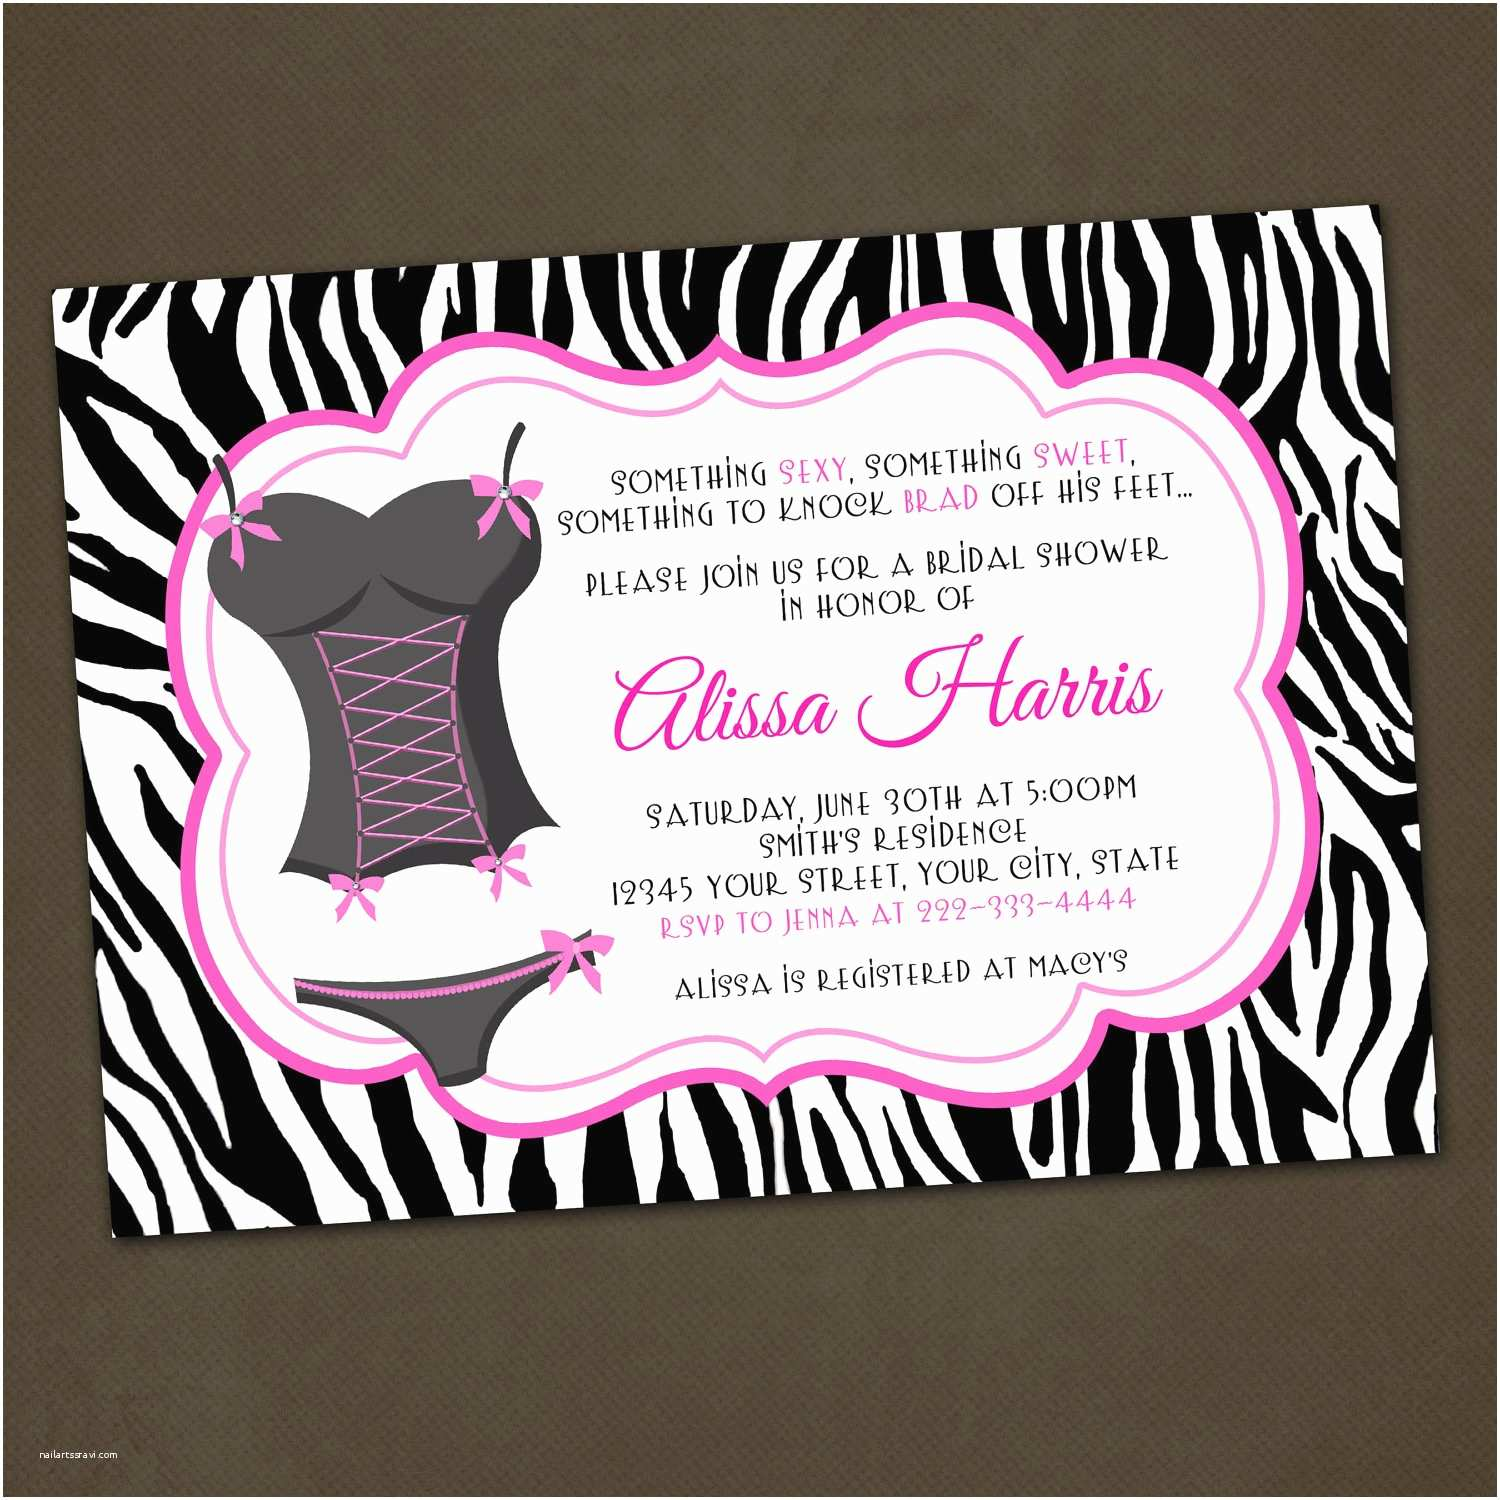 Lingerie Party Invitations Tips for Choosing Lingerie Party Invitations